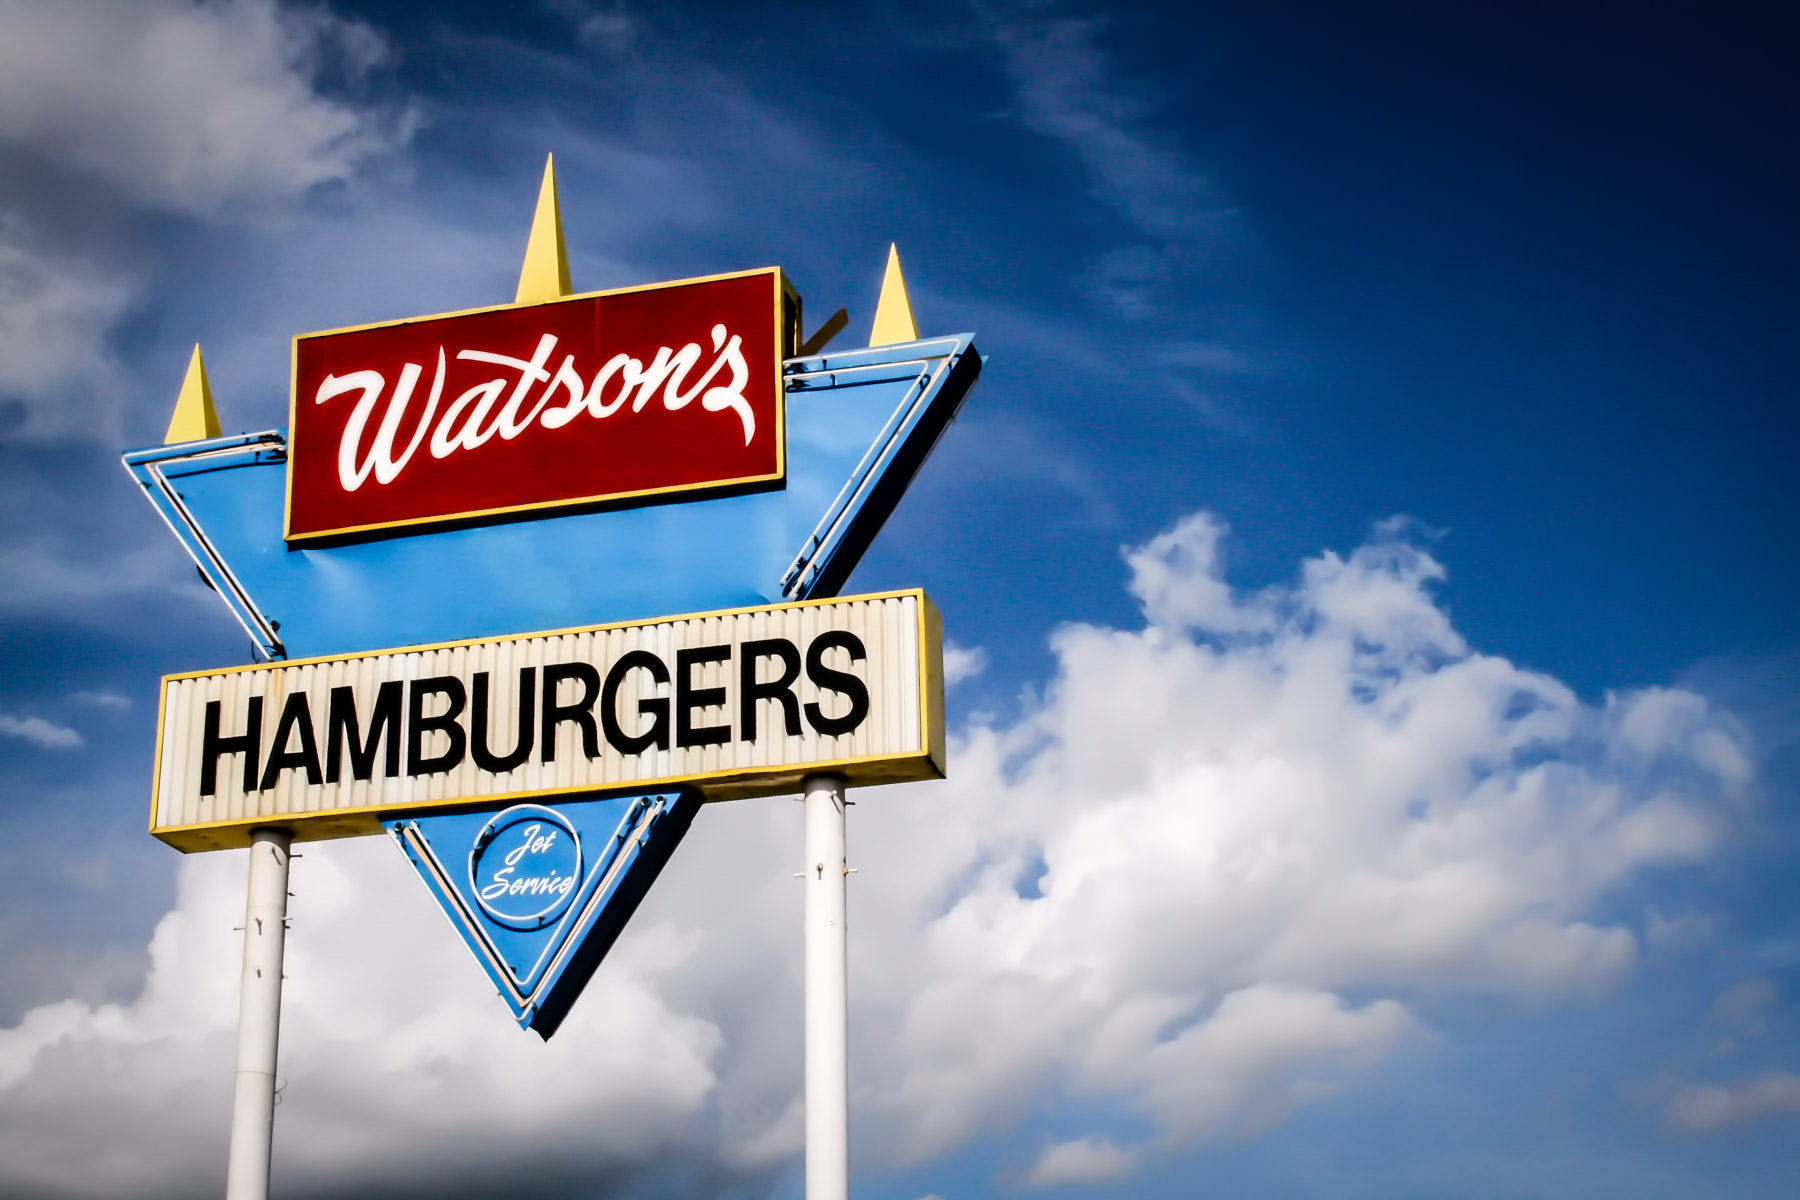 A Watson's Hamburgers stand sign in Denison, Texas.